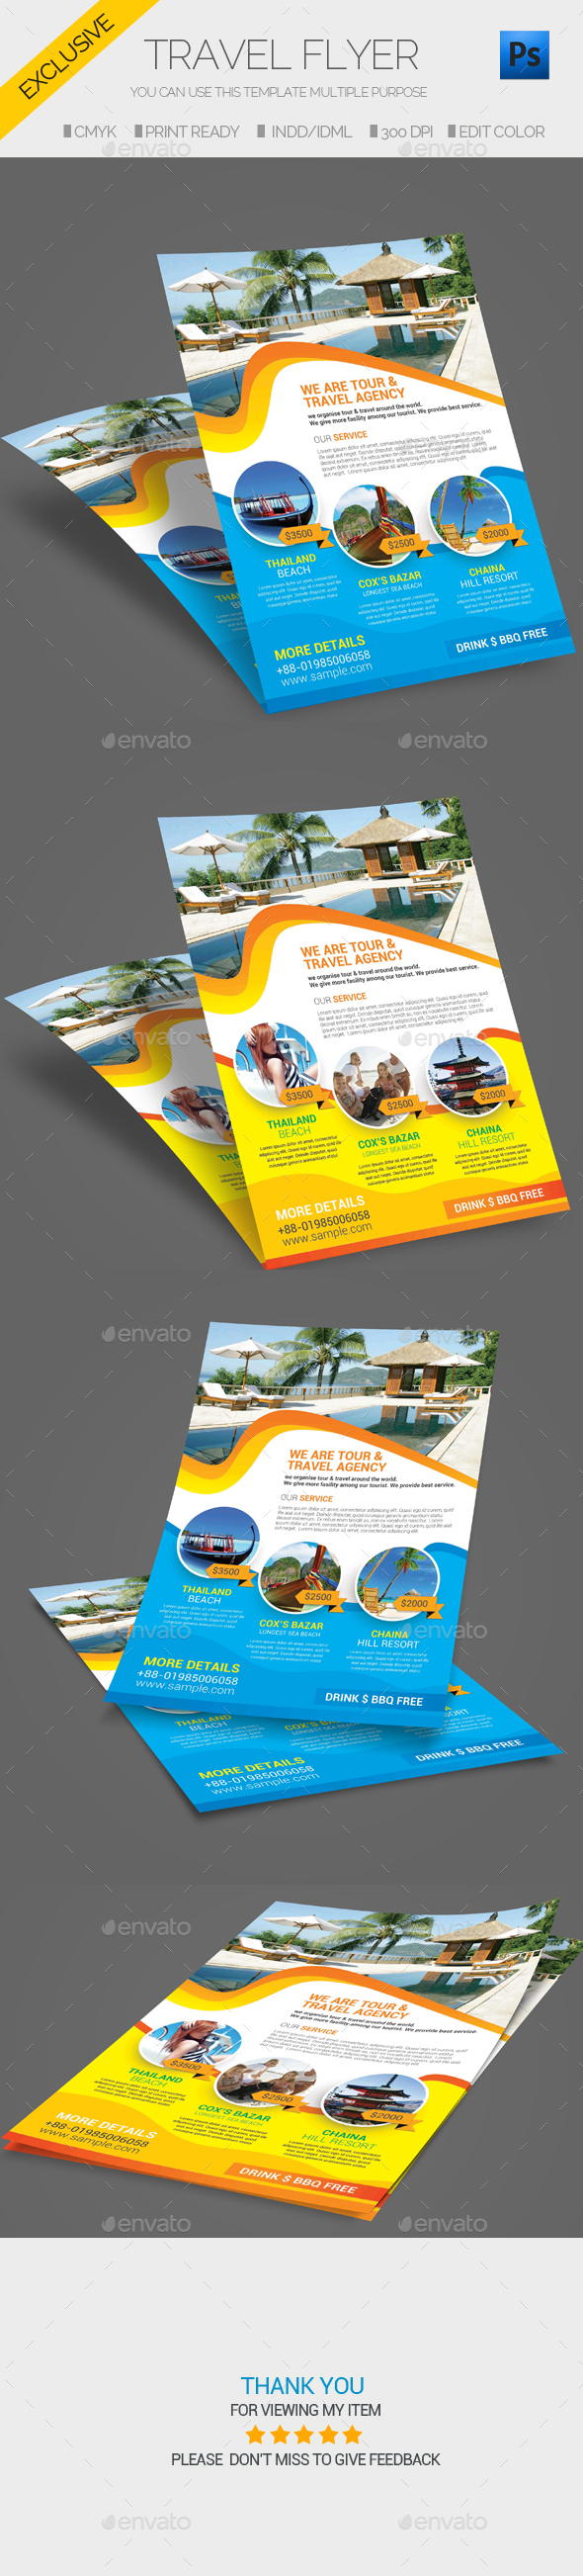 Travel Tour Flyer Template - Flyers Print Templates